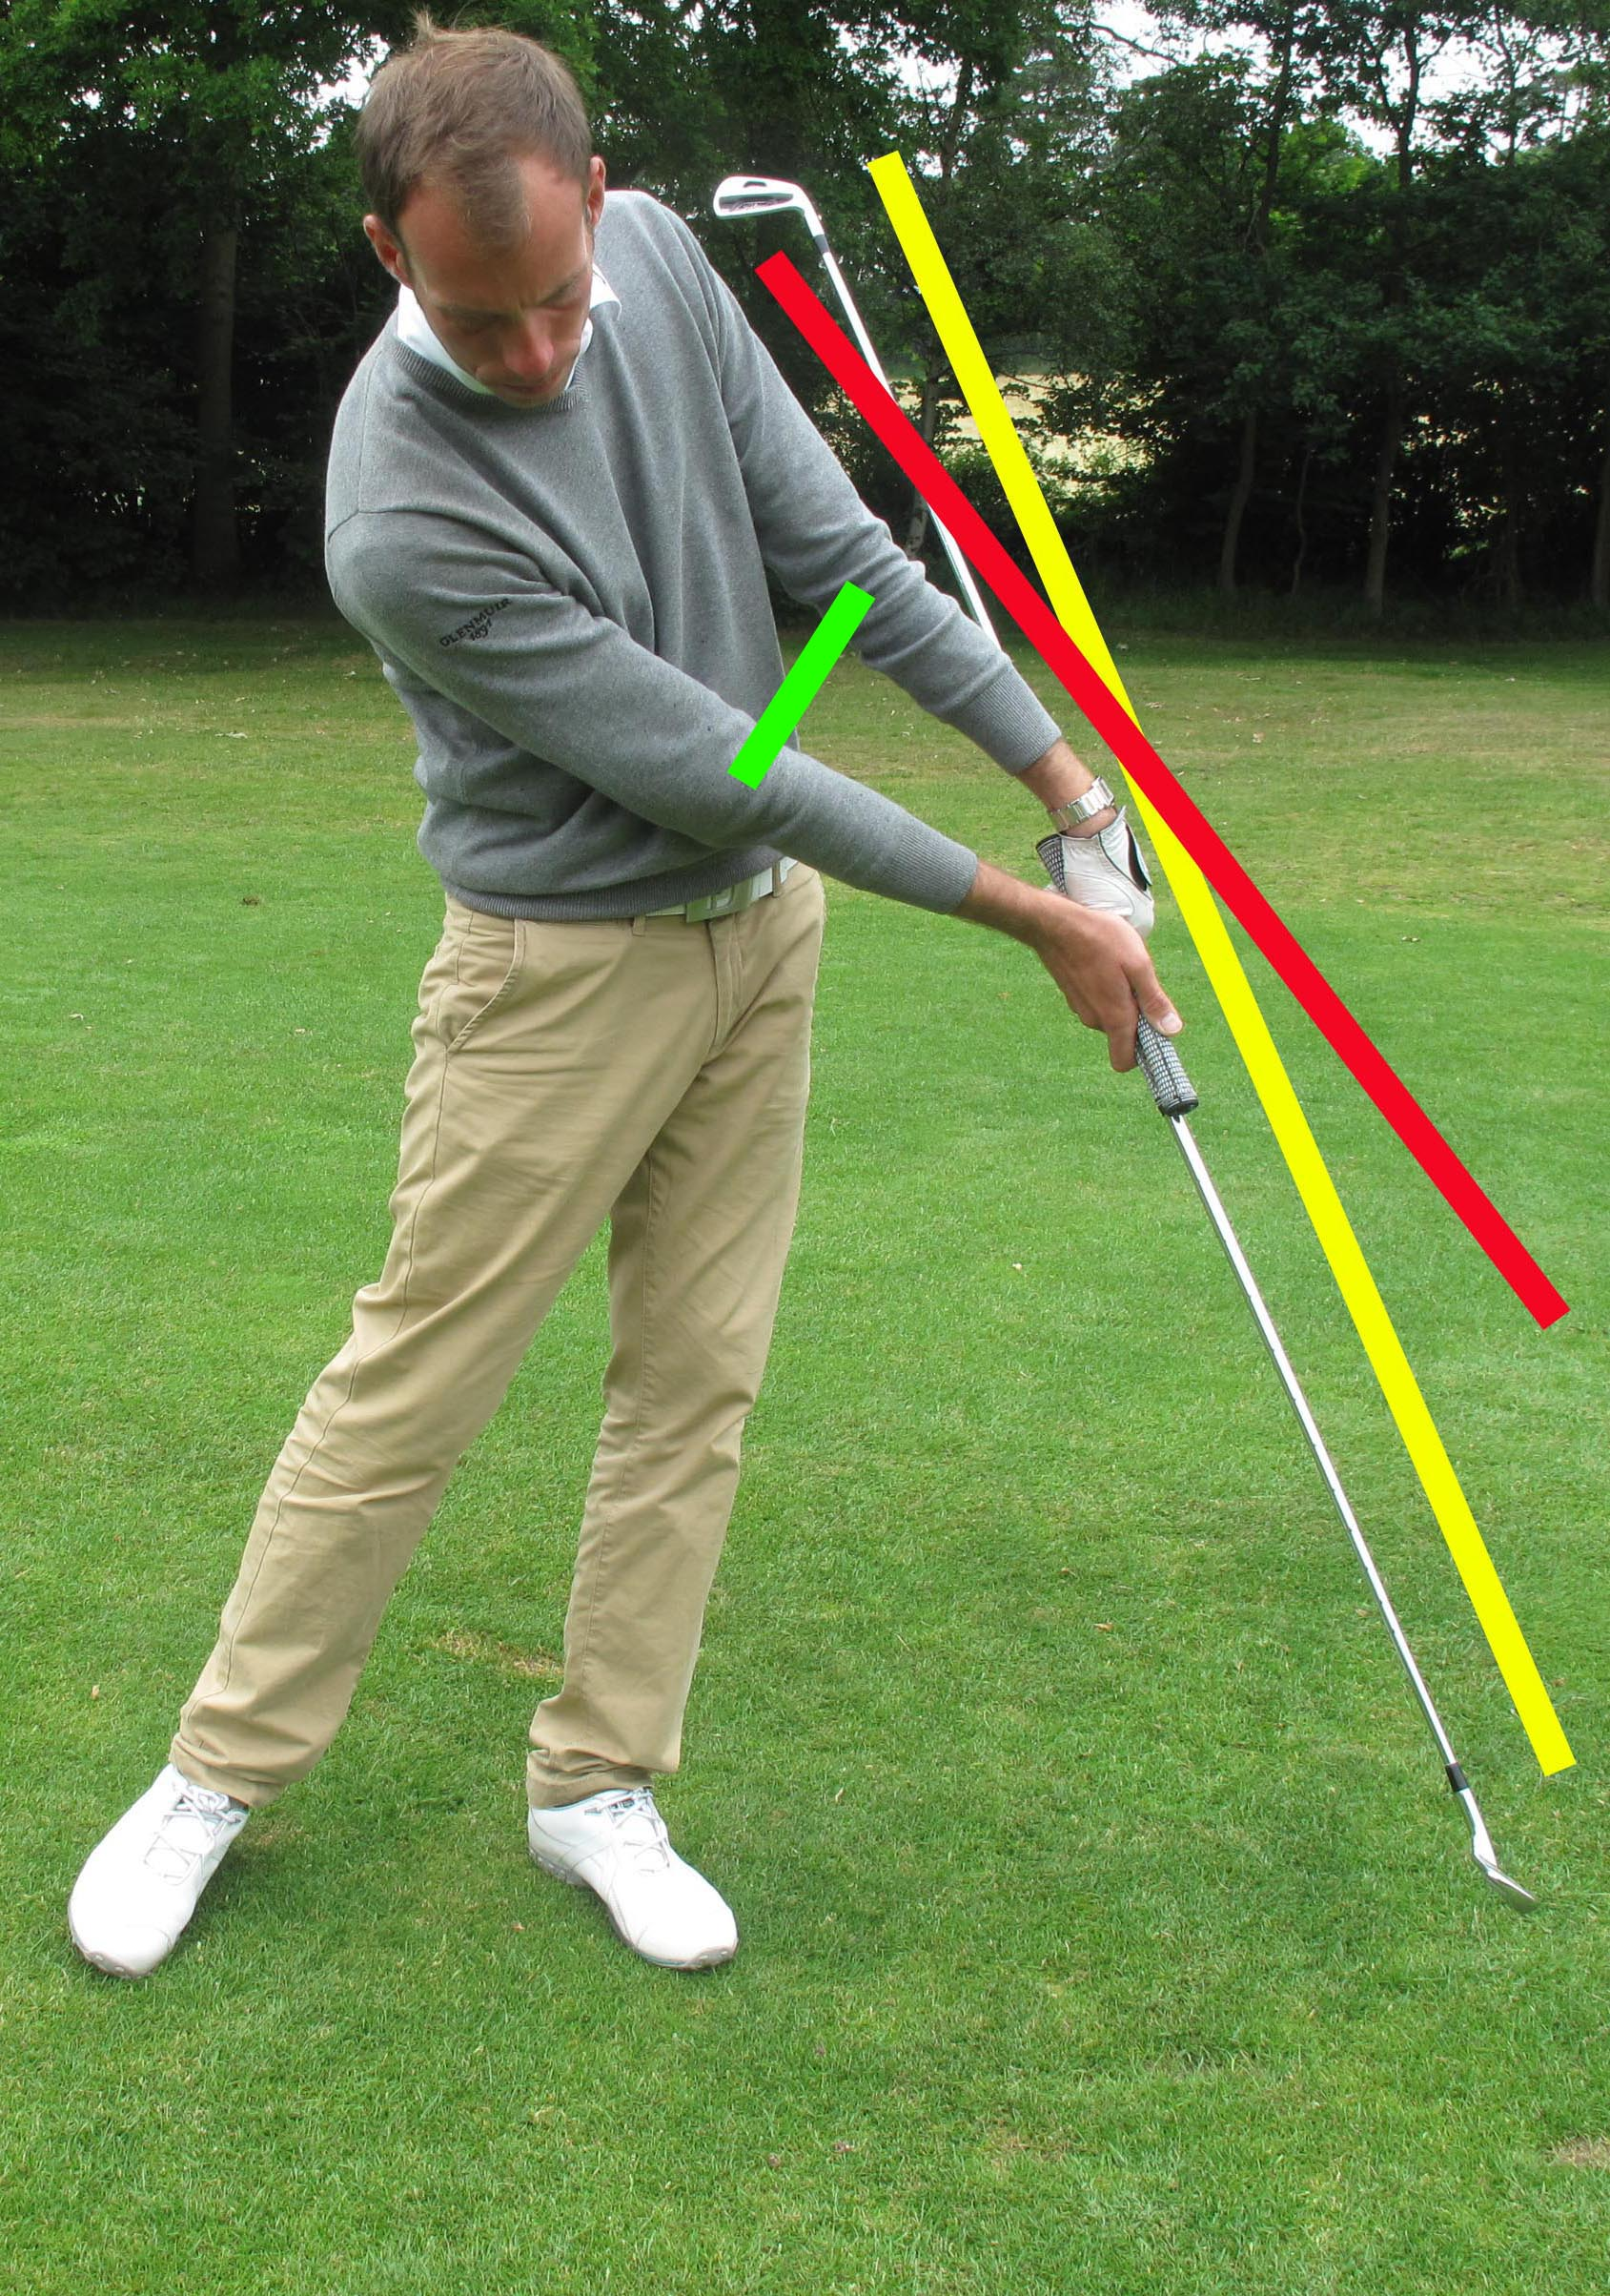 The double club forces you to push your hands forward at impact